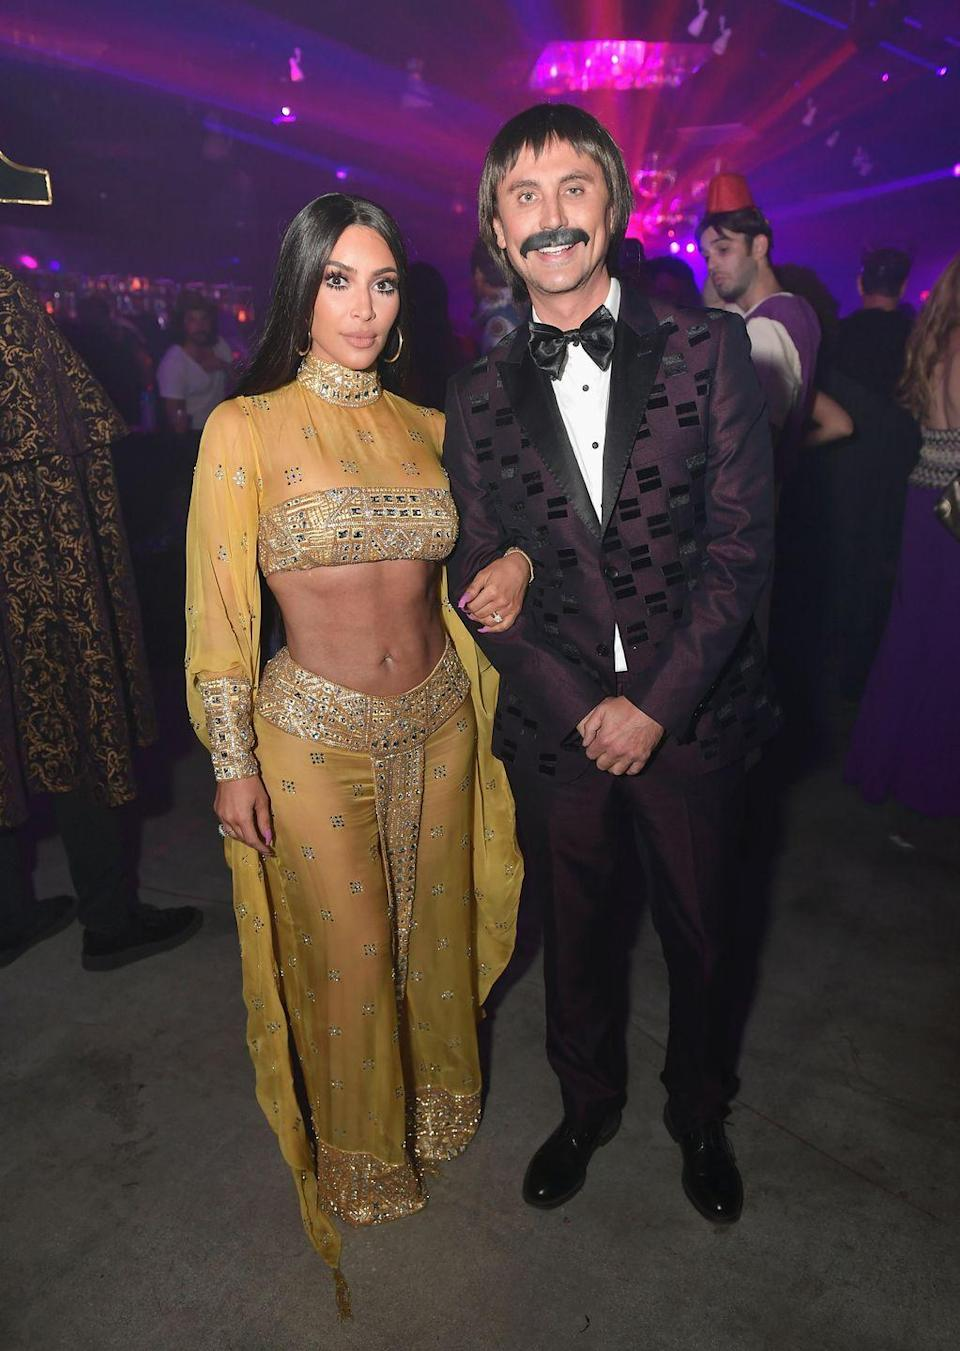 <p>Kim Kardashian and her best friend, Jonathan Cheban, nailed the couple's look in 2017—and they're not even a couple. The duo dressed up like Sonny and Cher, and it was epic.</p>